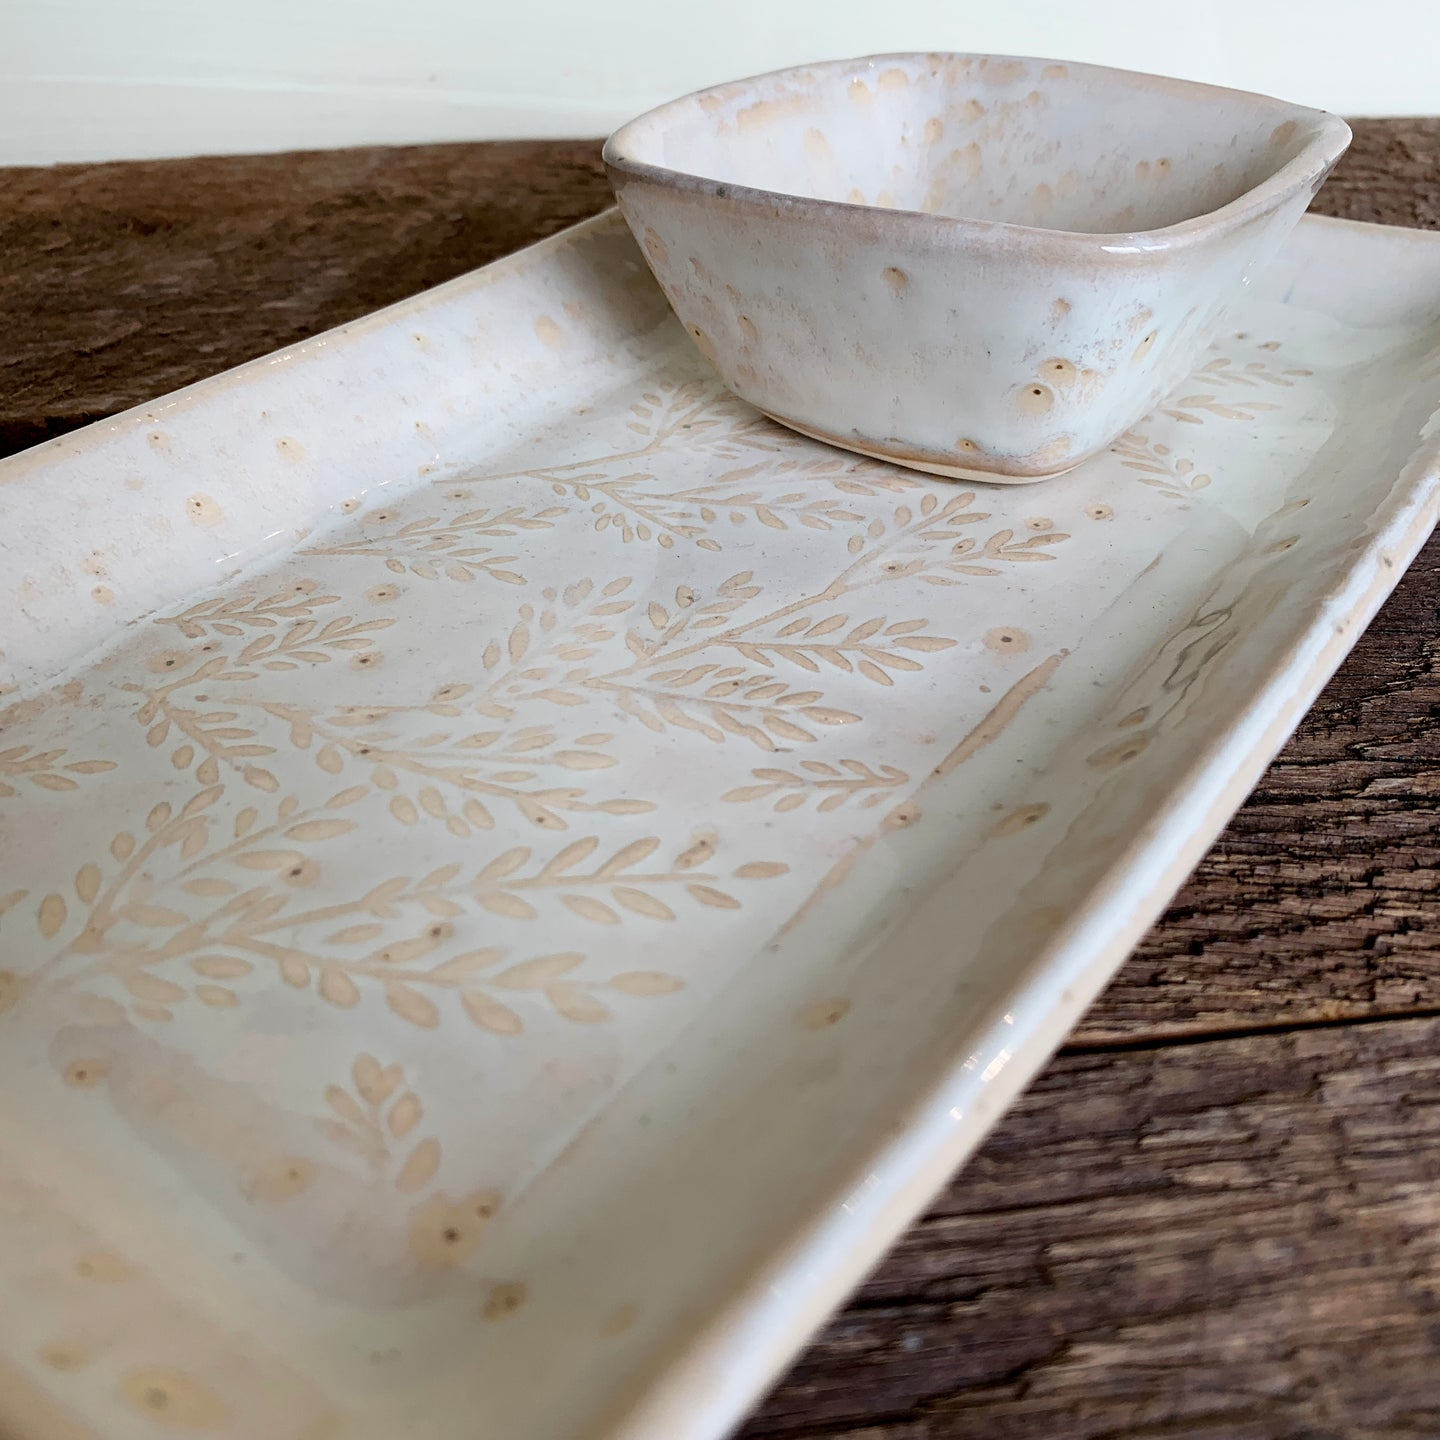 OATMEAL SMALL RECTANGLE PLATTER SET WITH FERNS